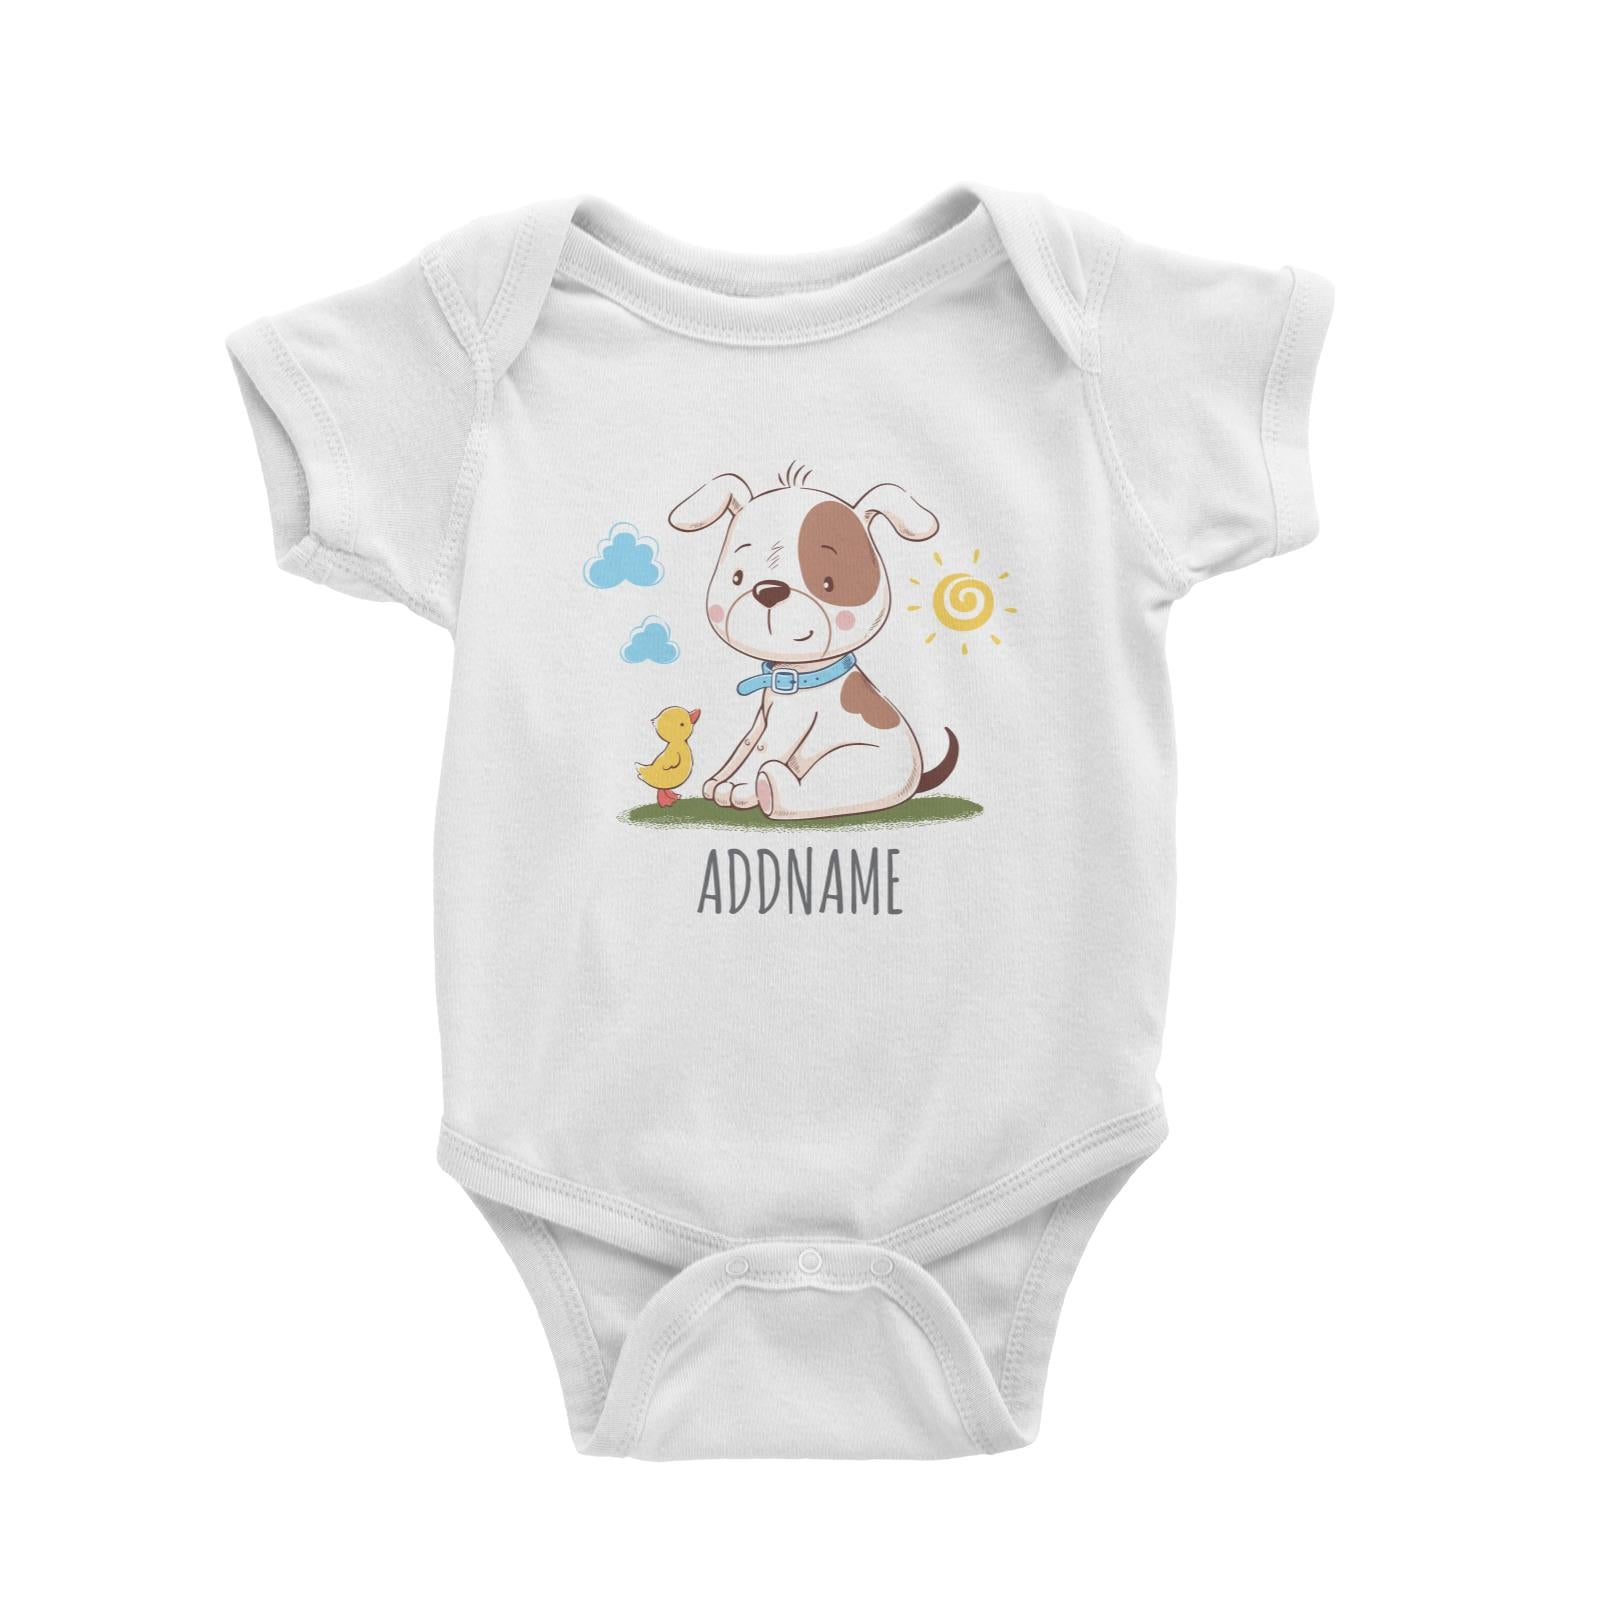 Dog with Duck White Baby Romper Personalizable Designs Cute Sweet Animal HG